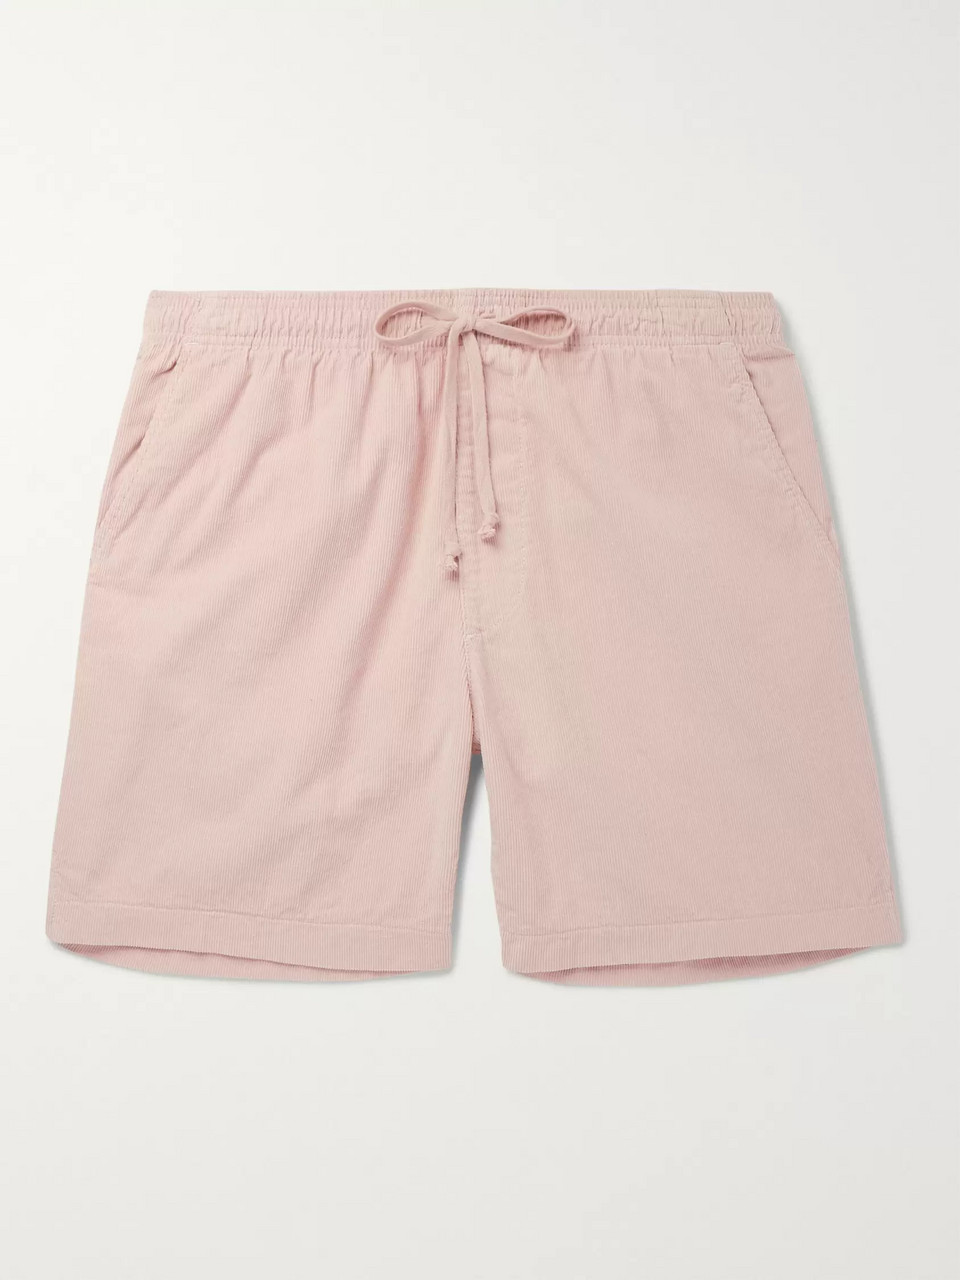 Save Khaki United Slim-Fit Cotton-Corduroy Drawstring Shorts